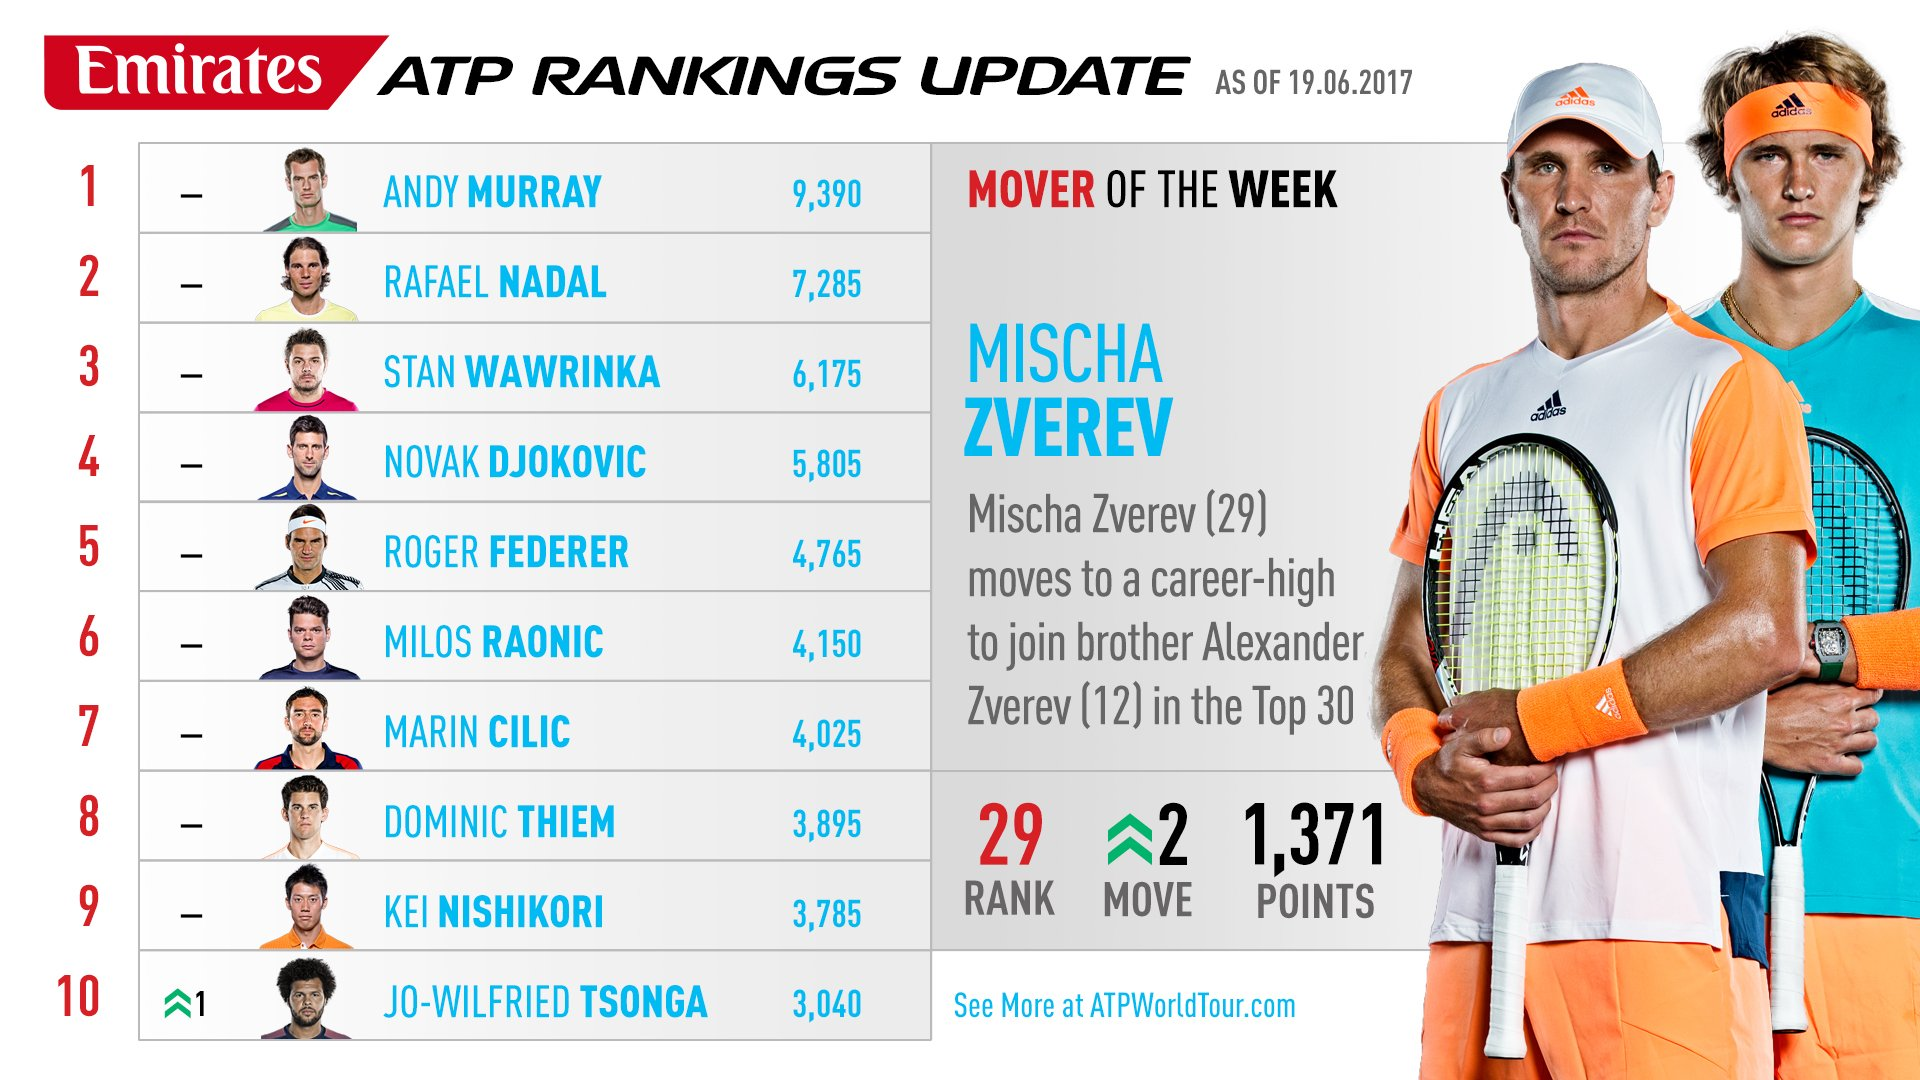 Mischa makes it two Zverevs in the Top 30 of the @emirates #ATP Rankings. Read More: https://t.co/ShhVoIiBcg https://t.co/pv9cJaPjvc